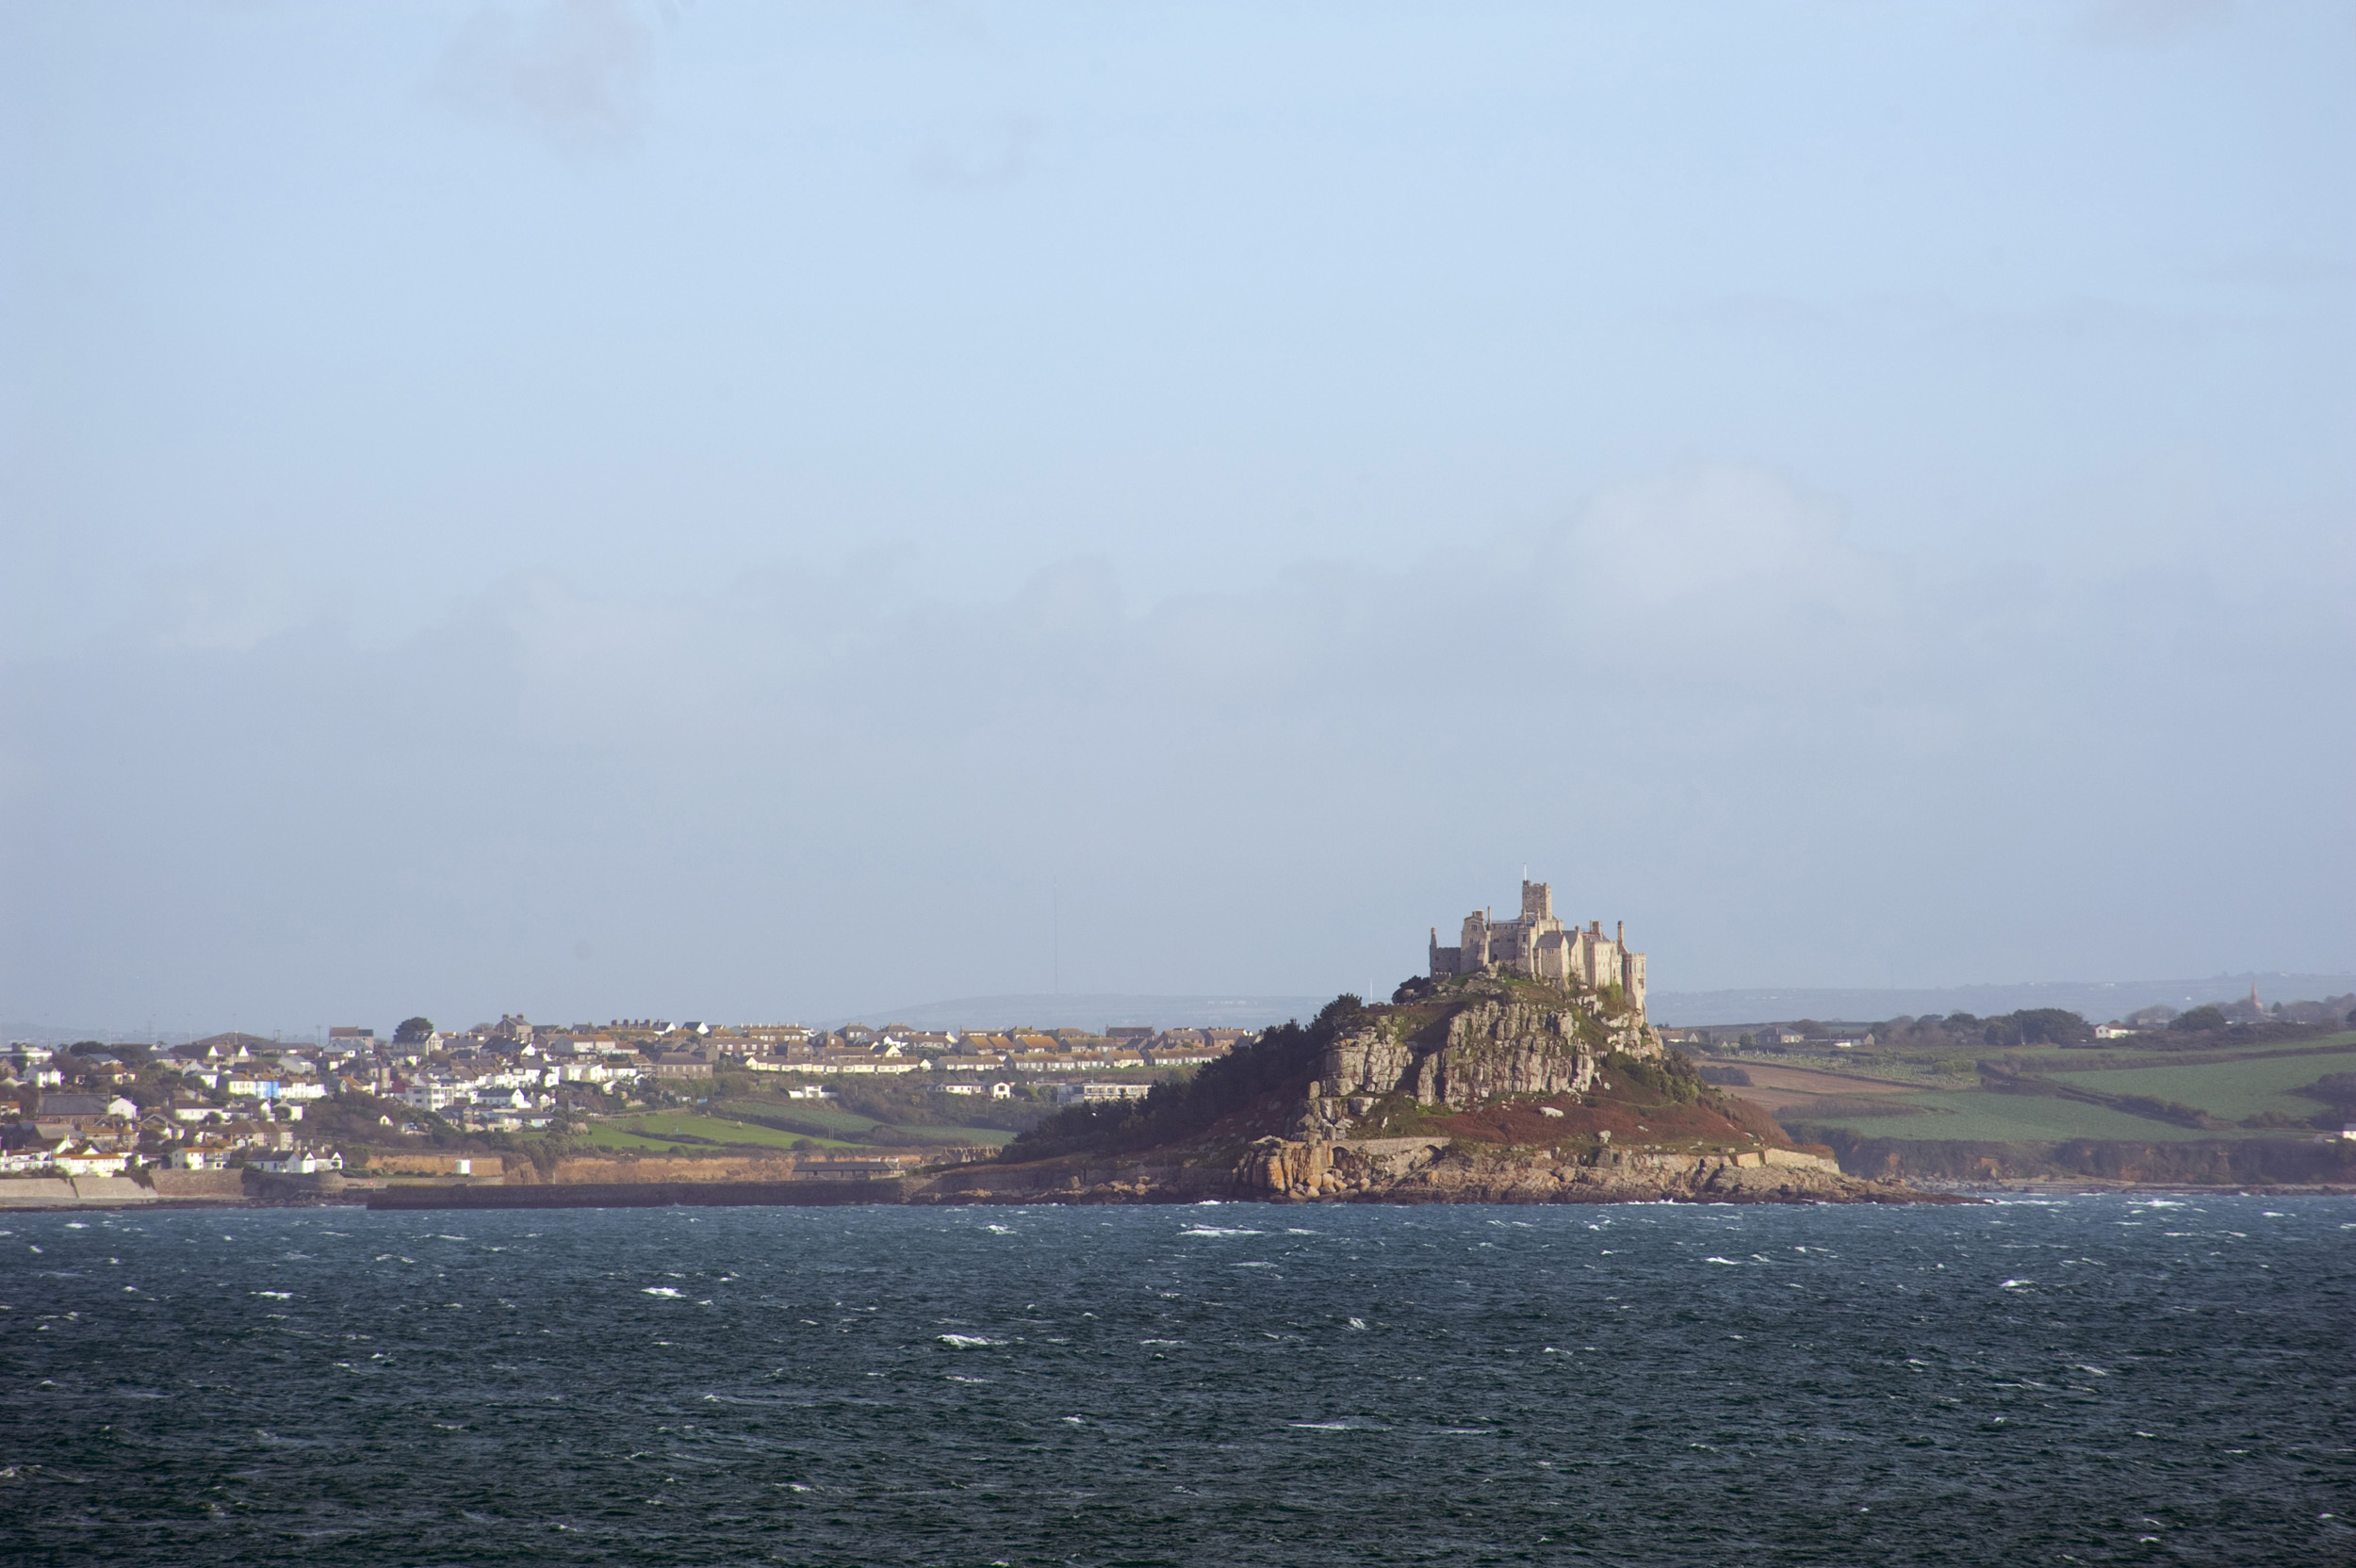 a view of the back of saint michaels mount taken from across the water and town of marazion